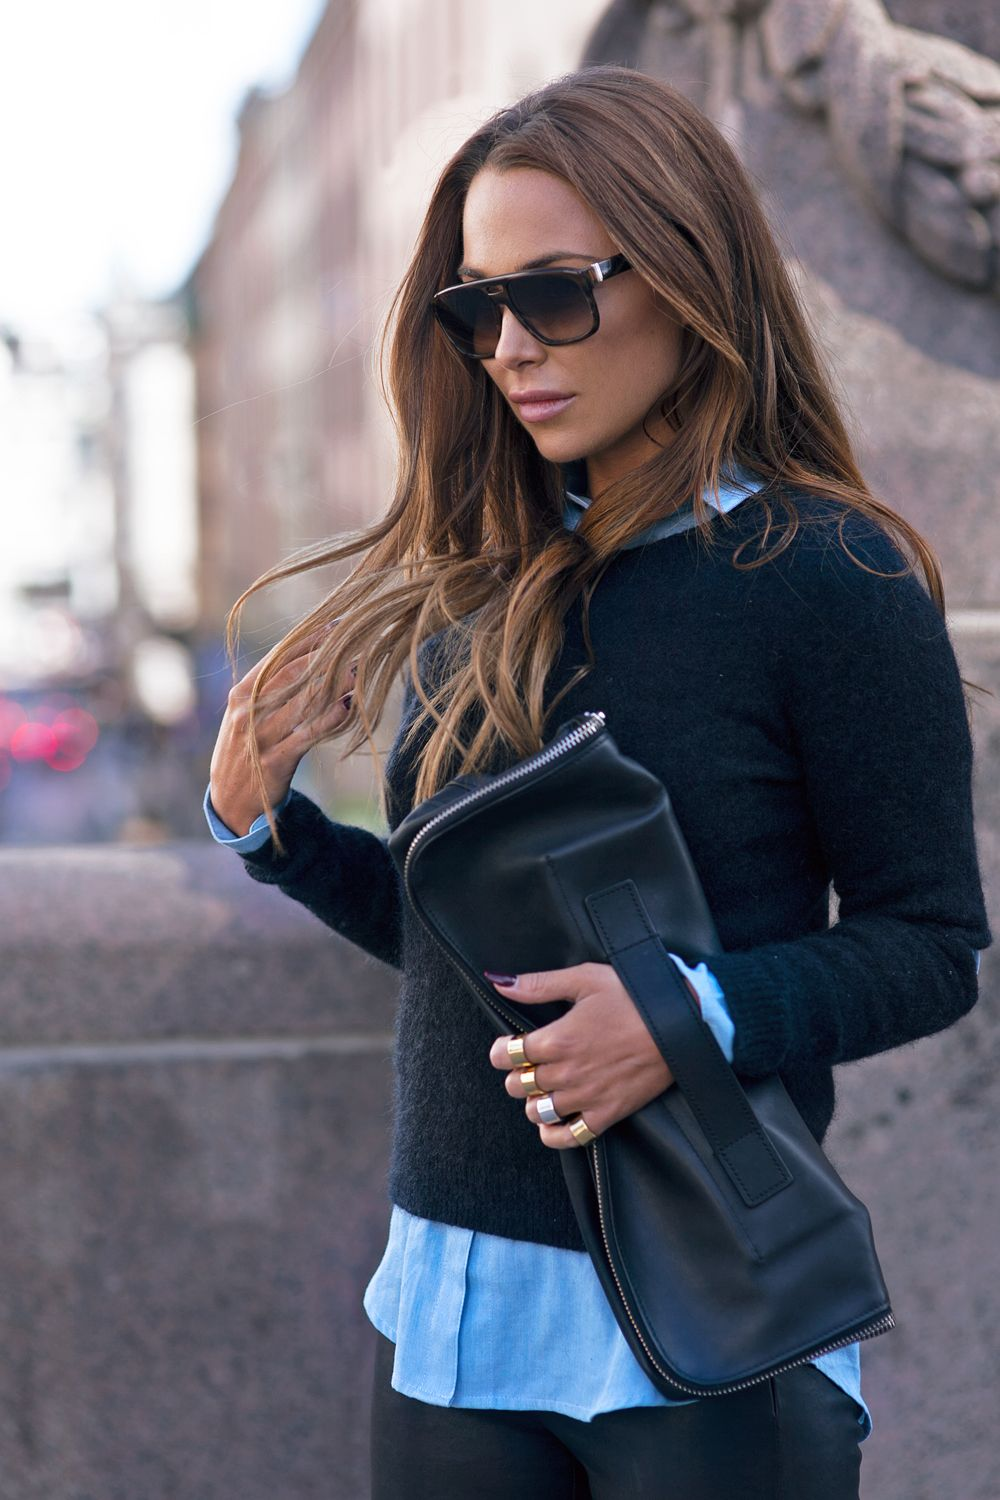 32d5a6755055 Black And Blue Outfits... Does It Work  - Outfit Inspiration ...